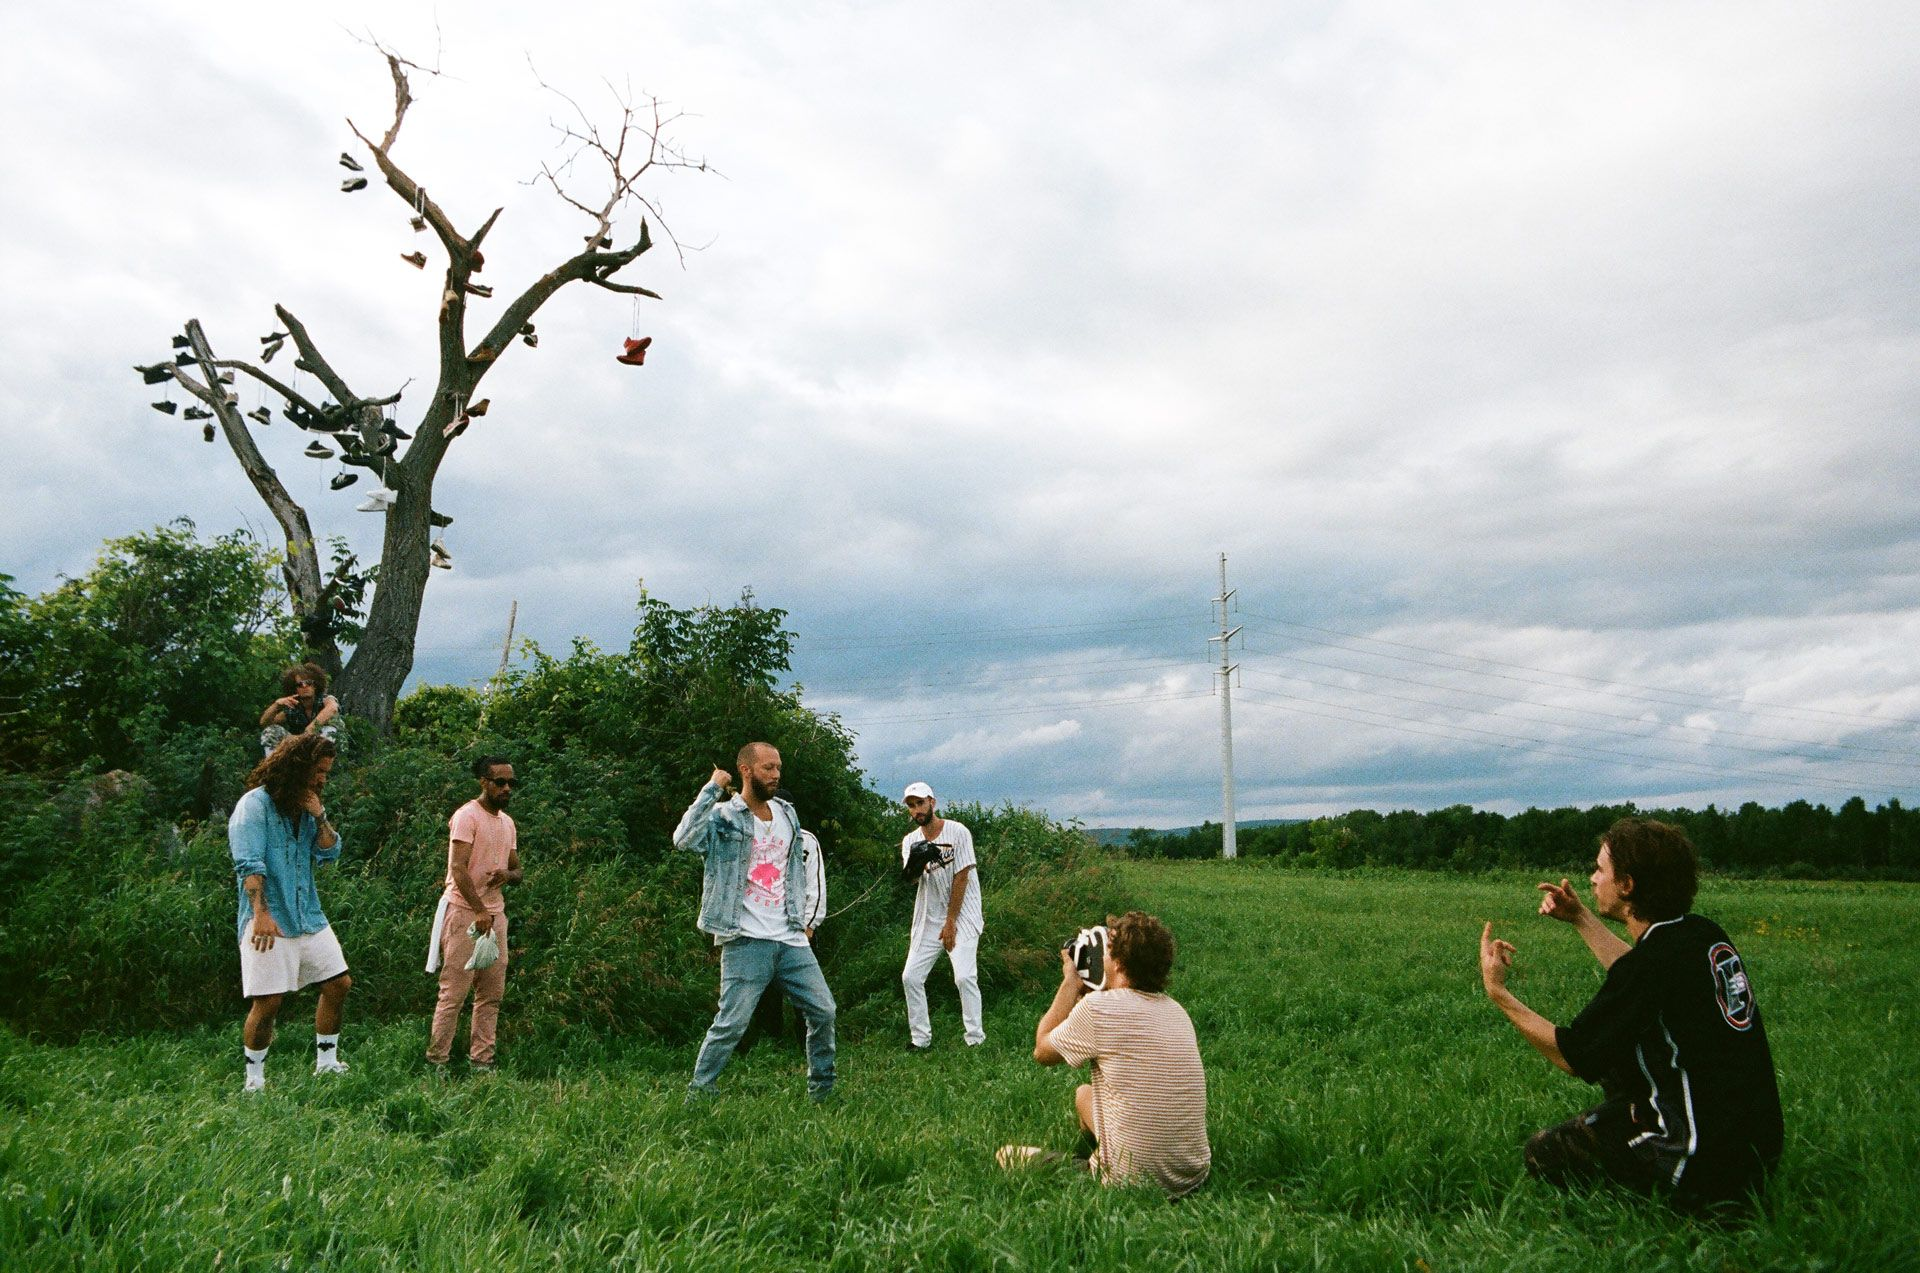 Vincent Ruel-Cote from Les Gamins crouching in field while filming Alaclair Ensemble hip hop collective music video Felix featuring rapper Souldia